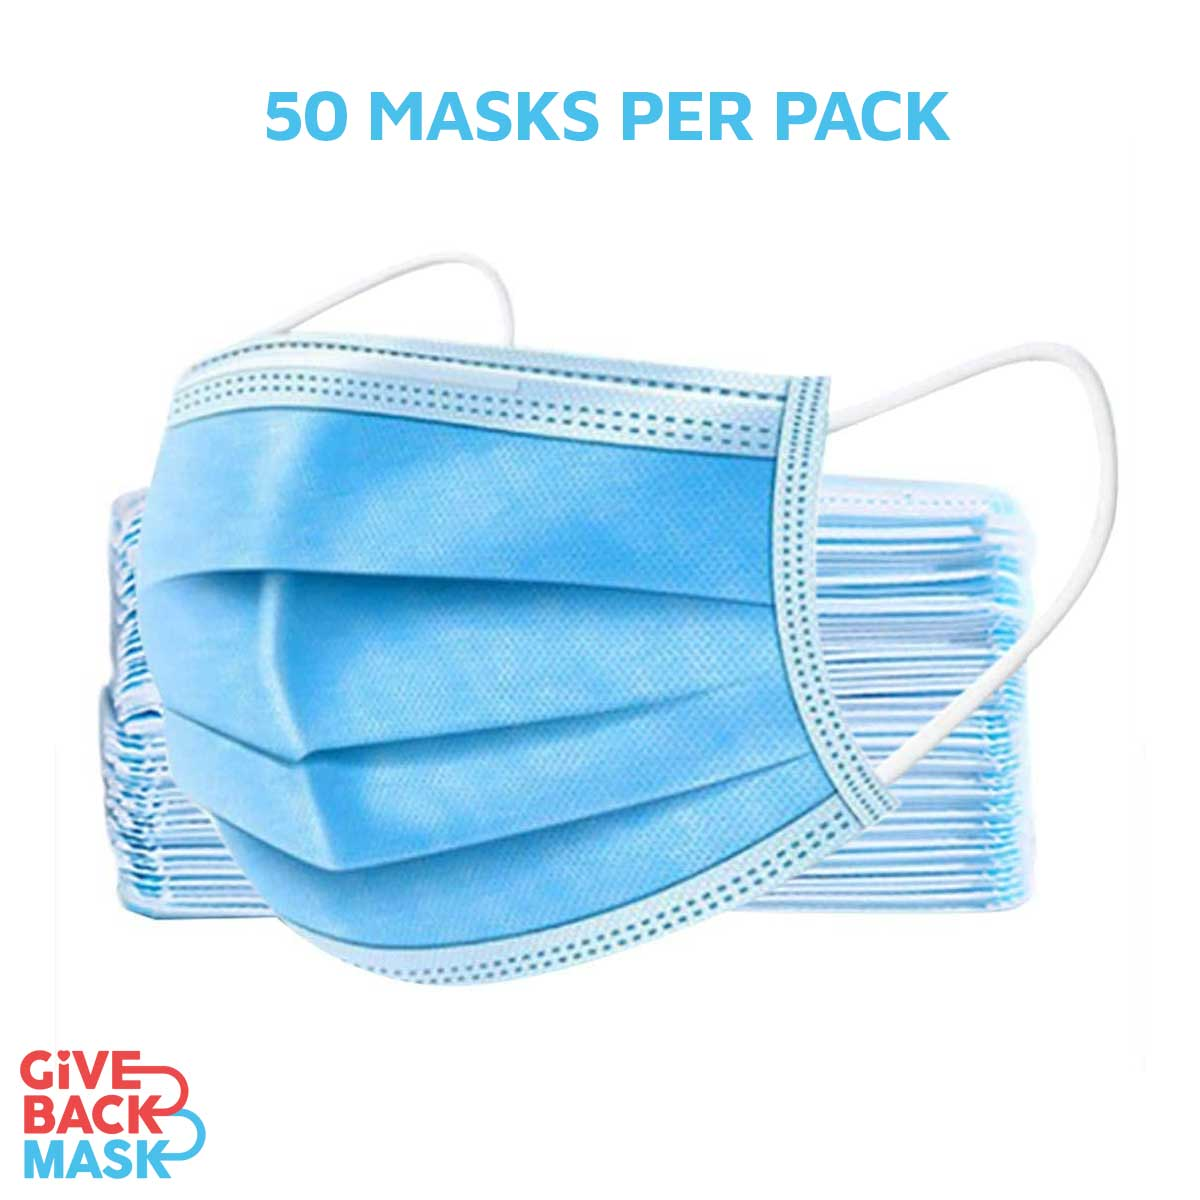 Give Back Masks - 50 per Pack